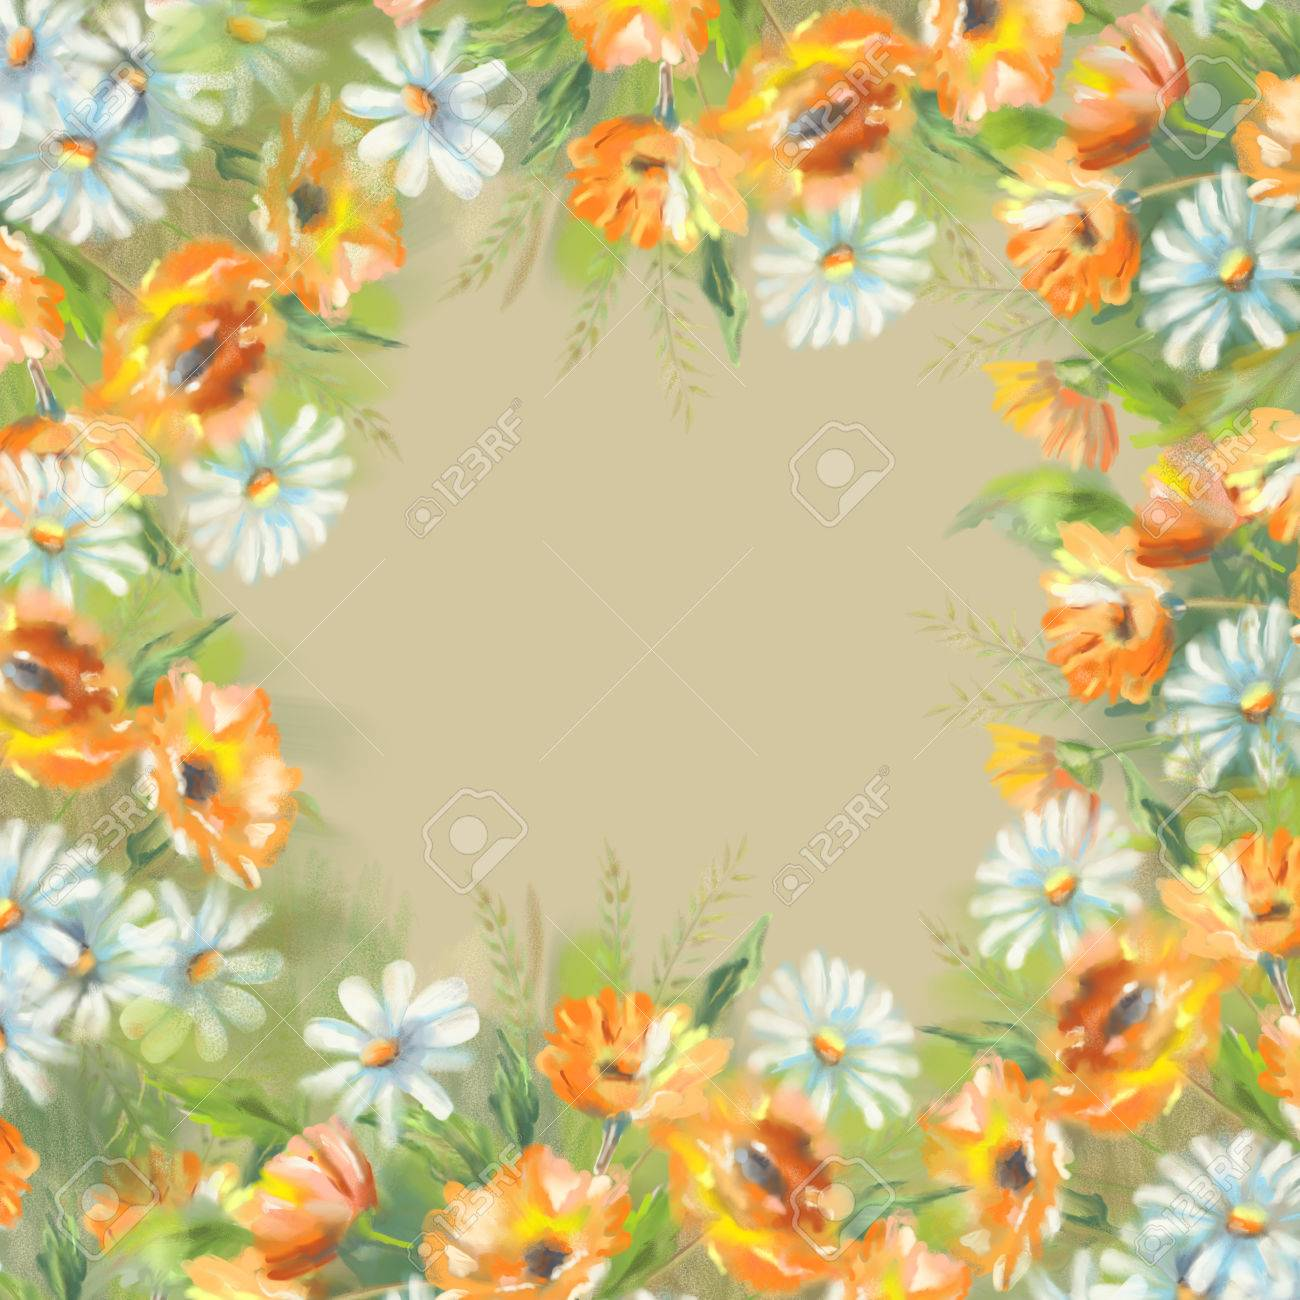 Watercolor Illustration Of Painted Flowers Border The Original